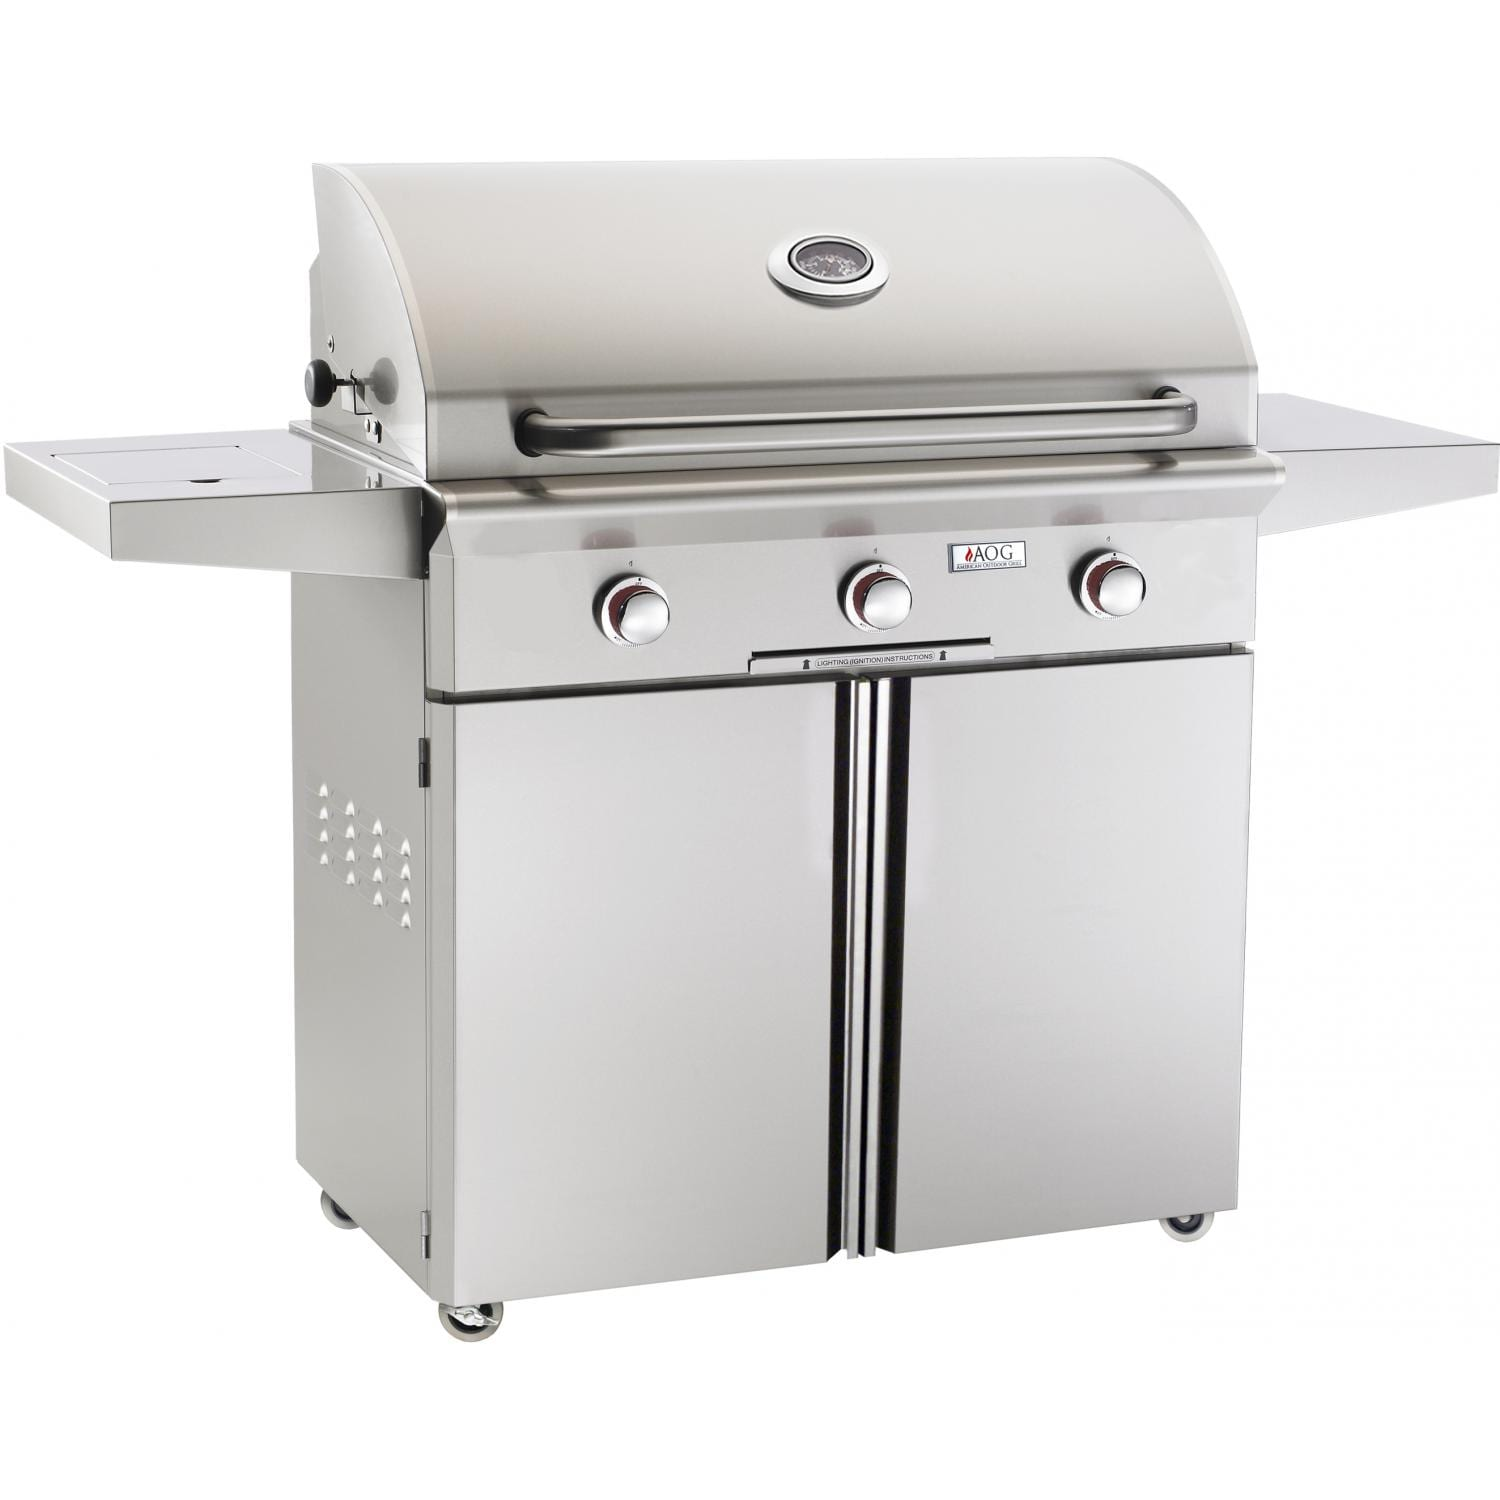 American Outdoor Grill T-Series 36-Inch 3-Burner Freestanding Grill